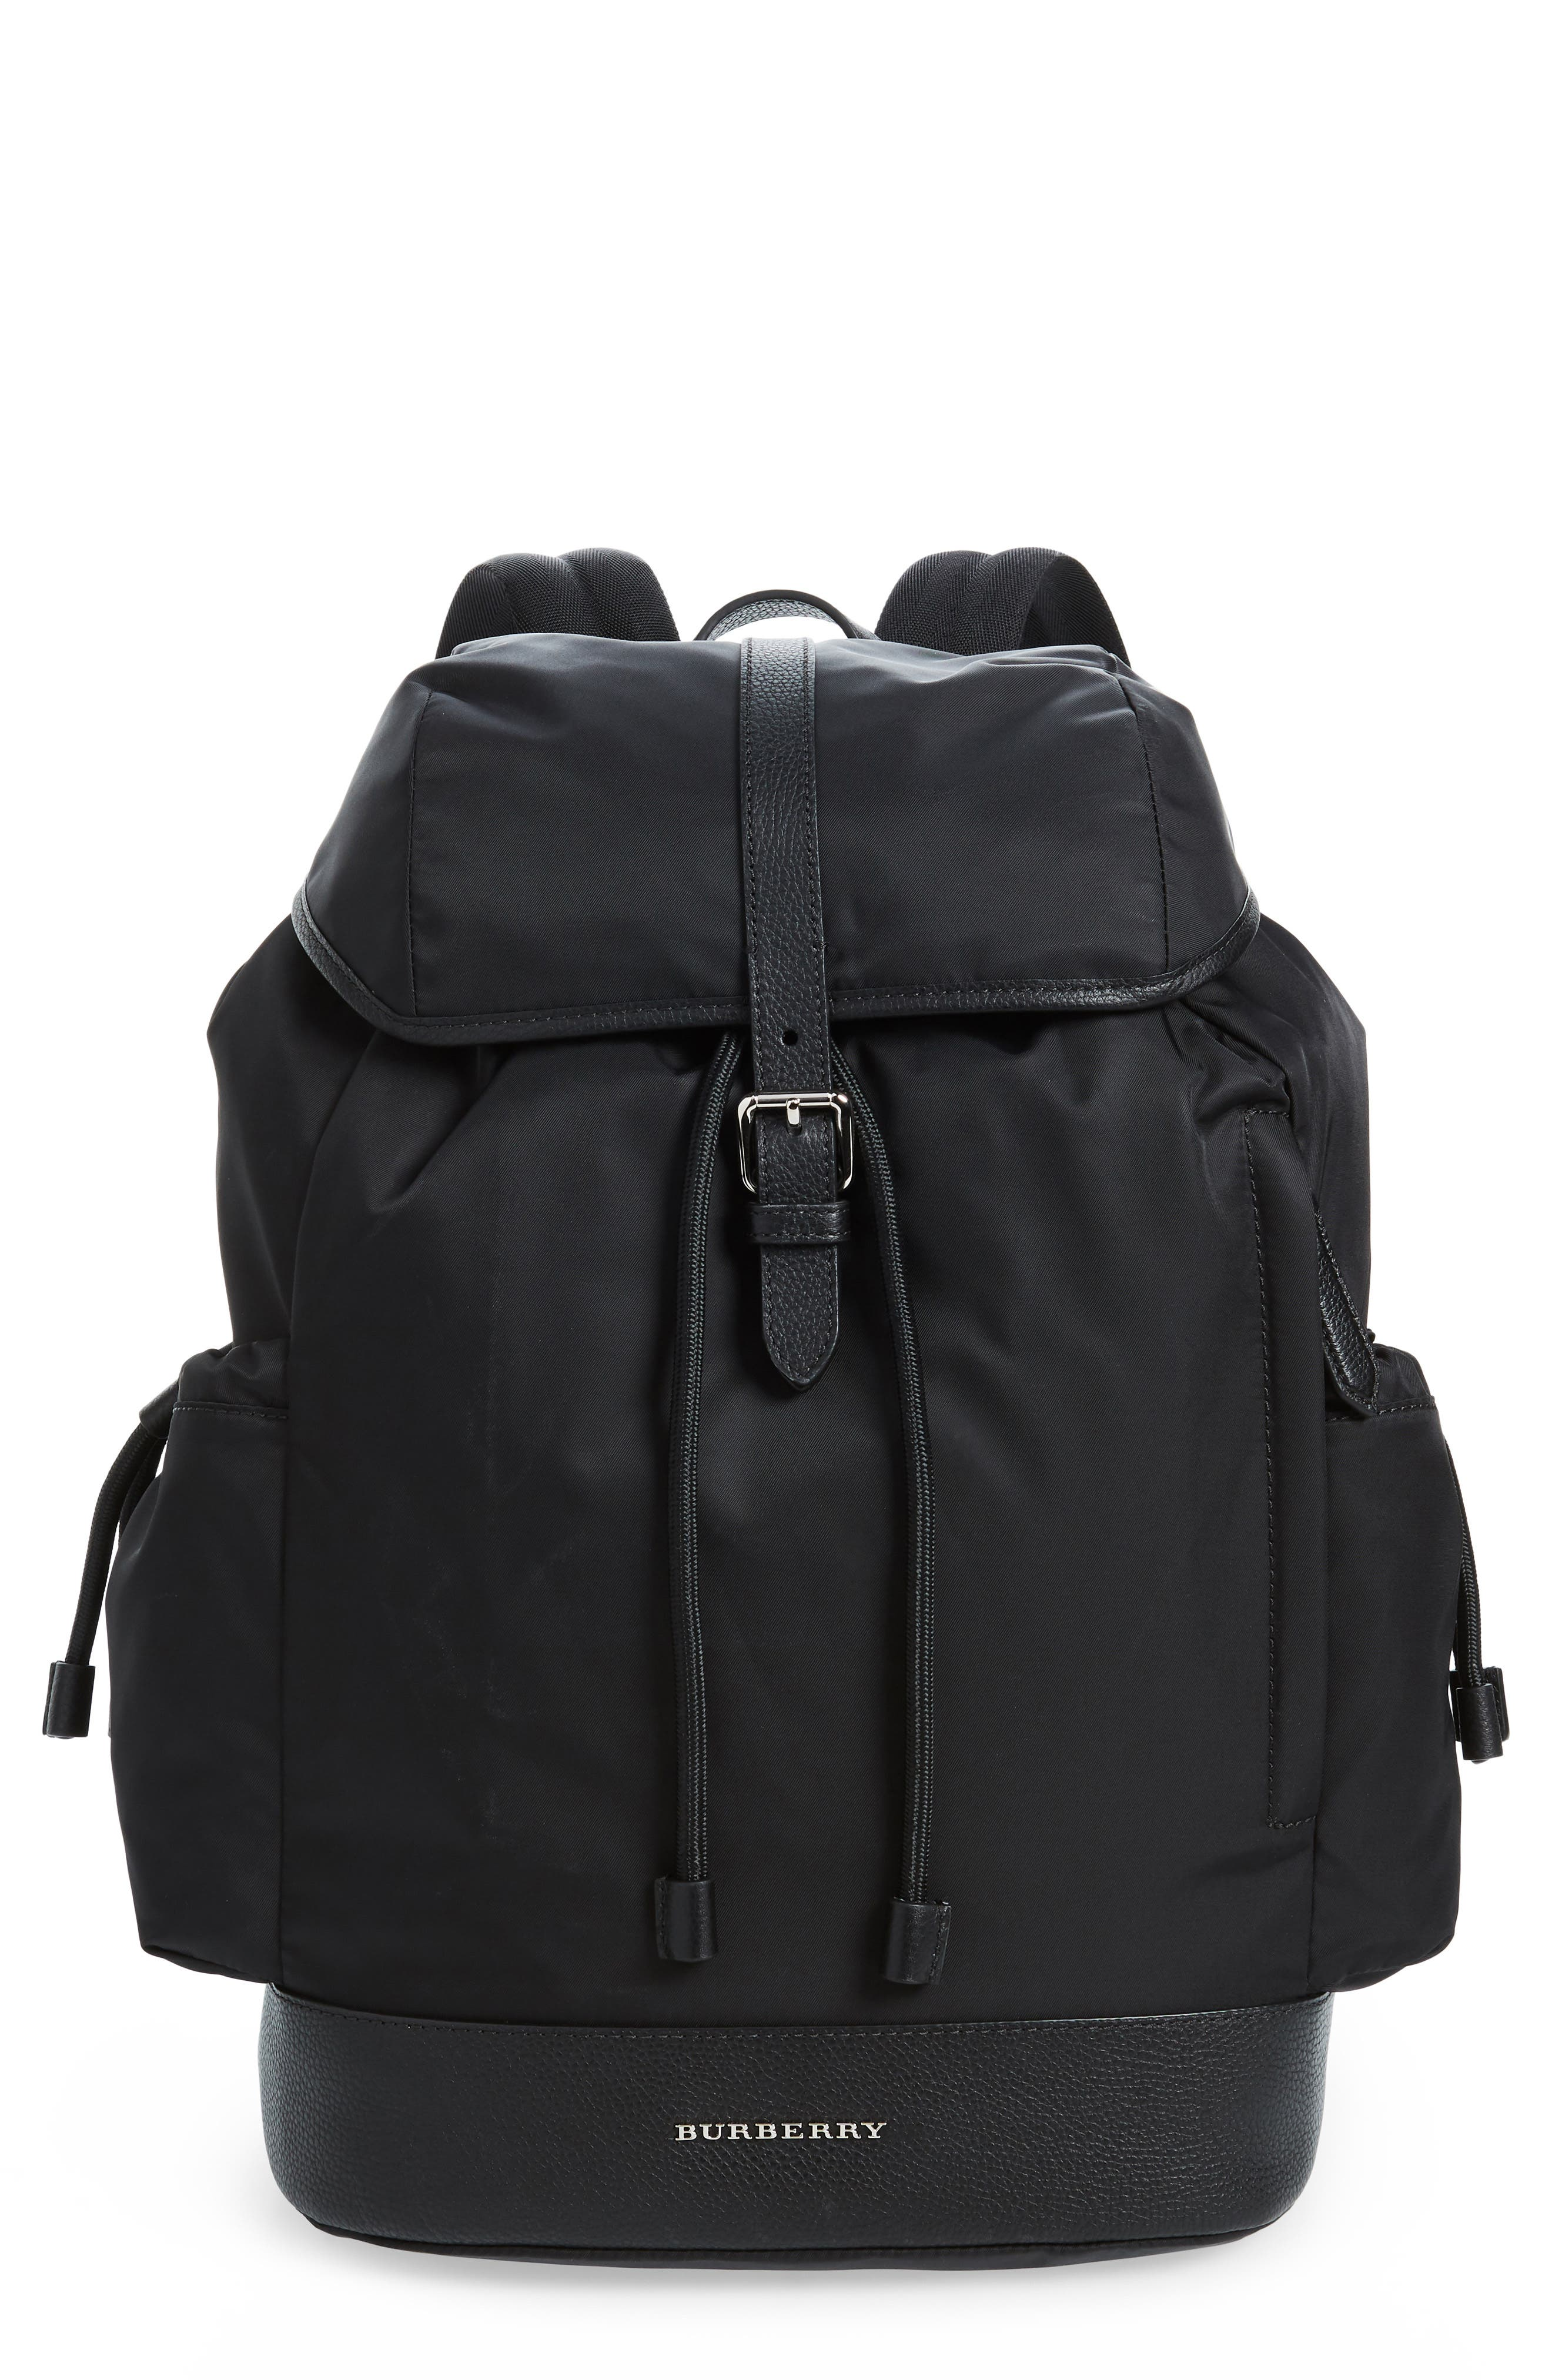 Watson Diaper Backpack,                         Main,                         color, BLACK